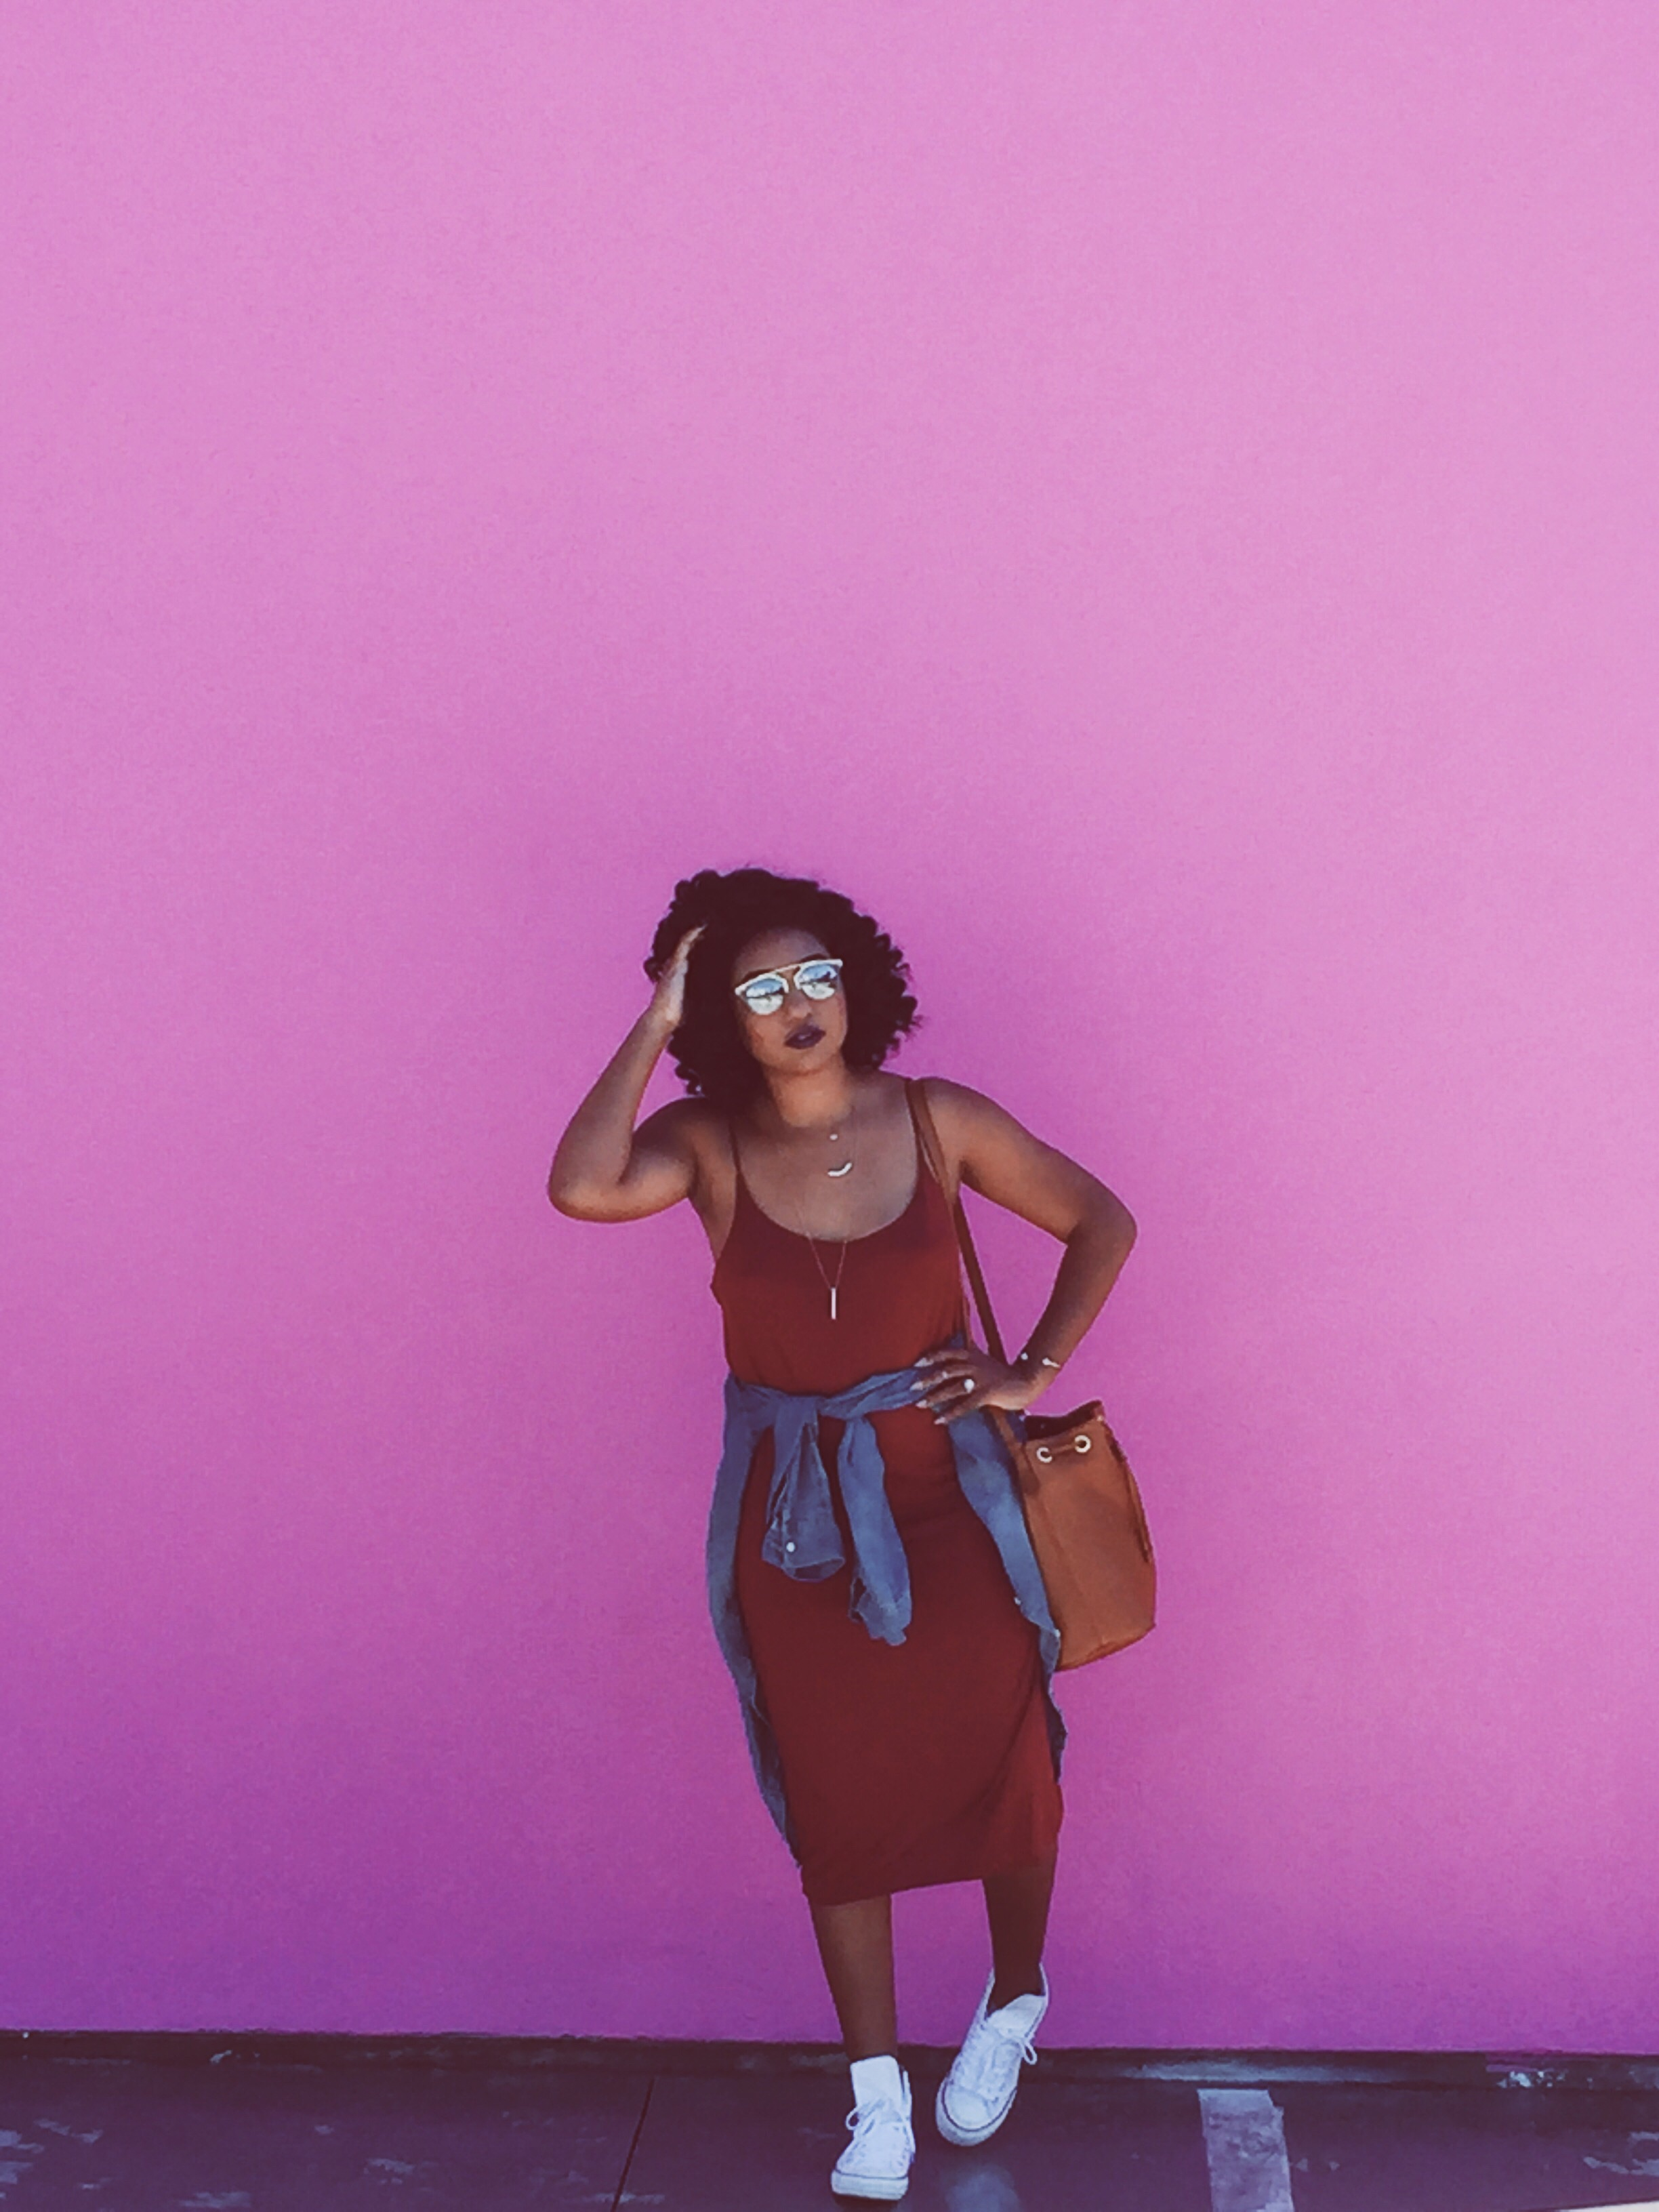 The infamous pink wall at the Paul Smith store in West Hollywood.